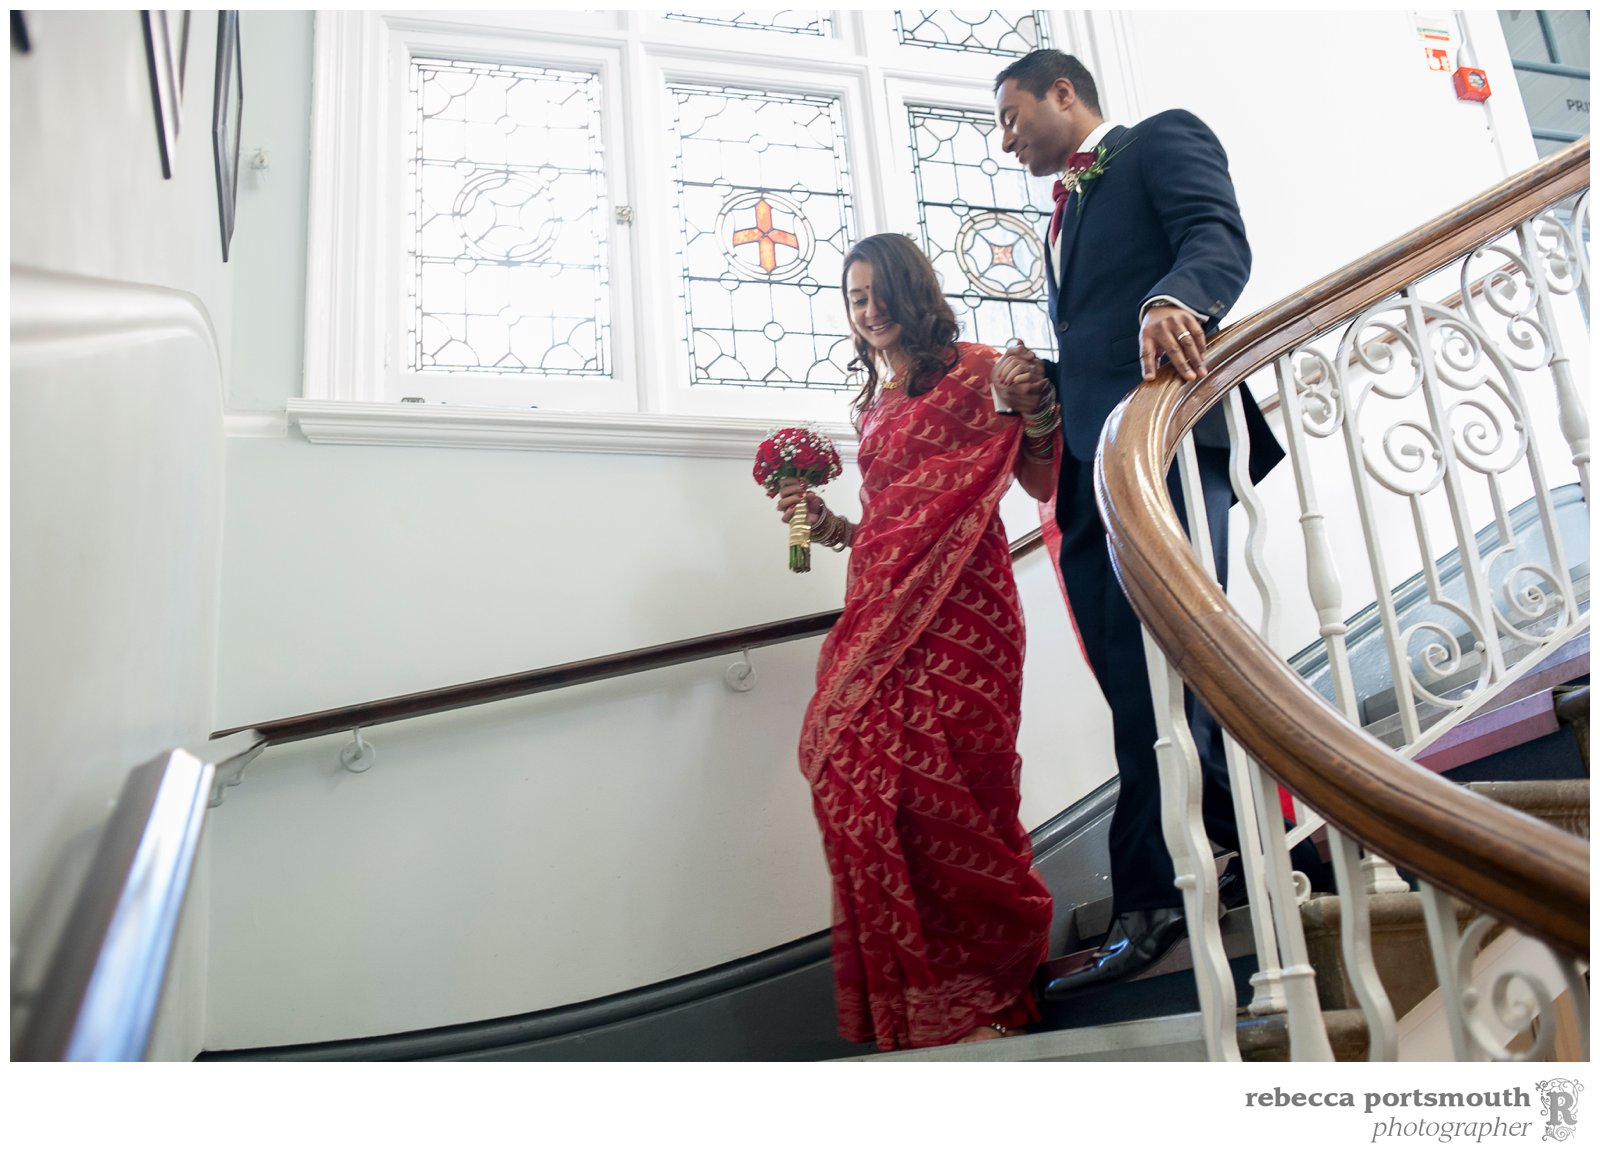 The bride and groom descend the period wooden stairs at Mayfair Library in South Audley Street, ready to be covered in confetti by their guests.